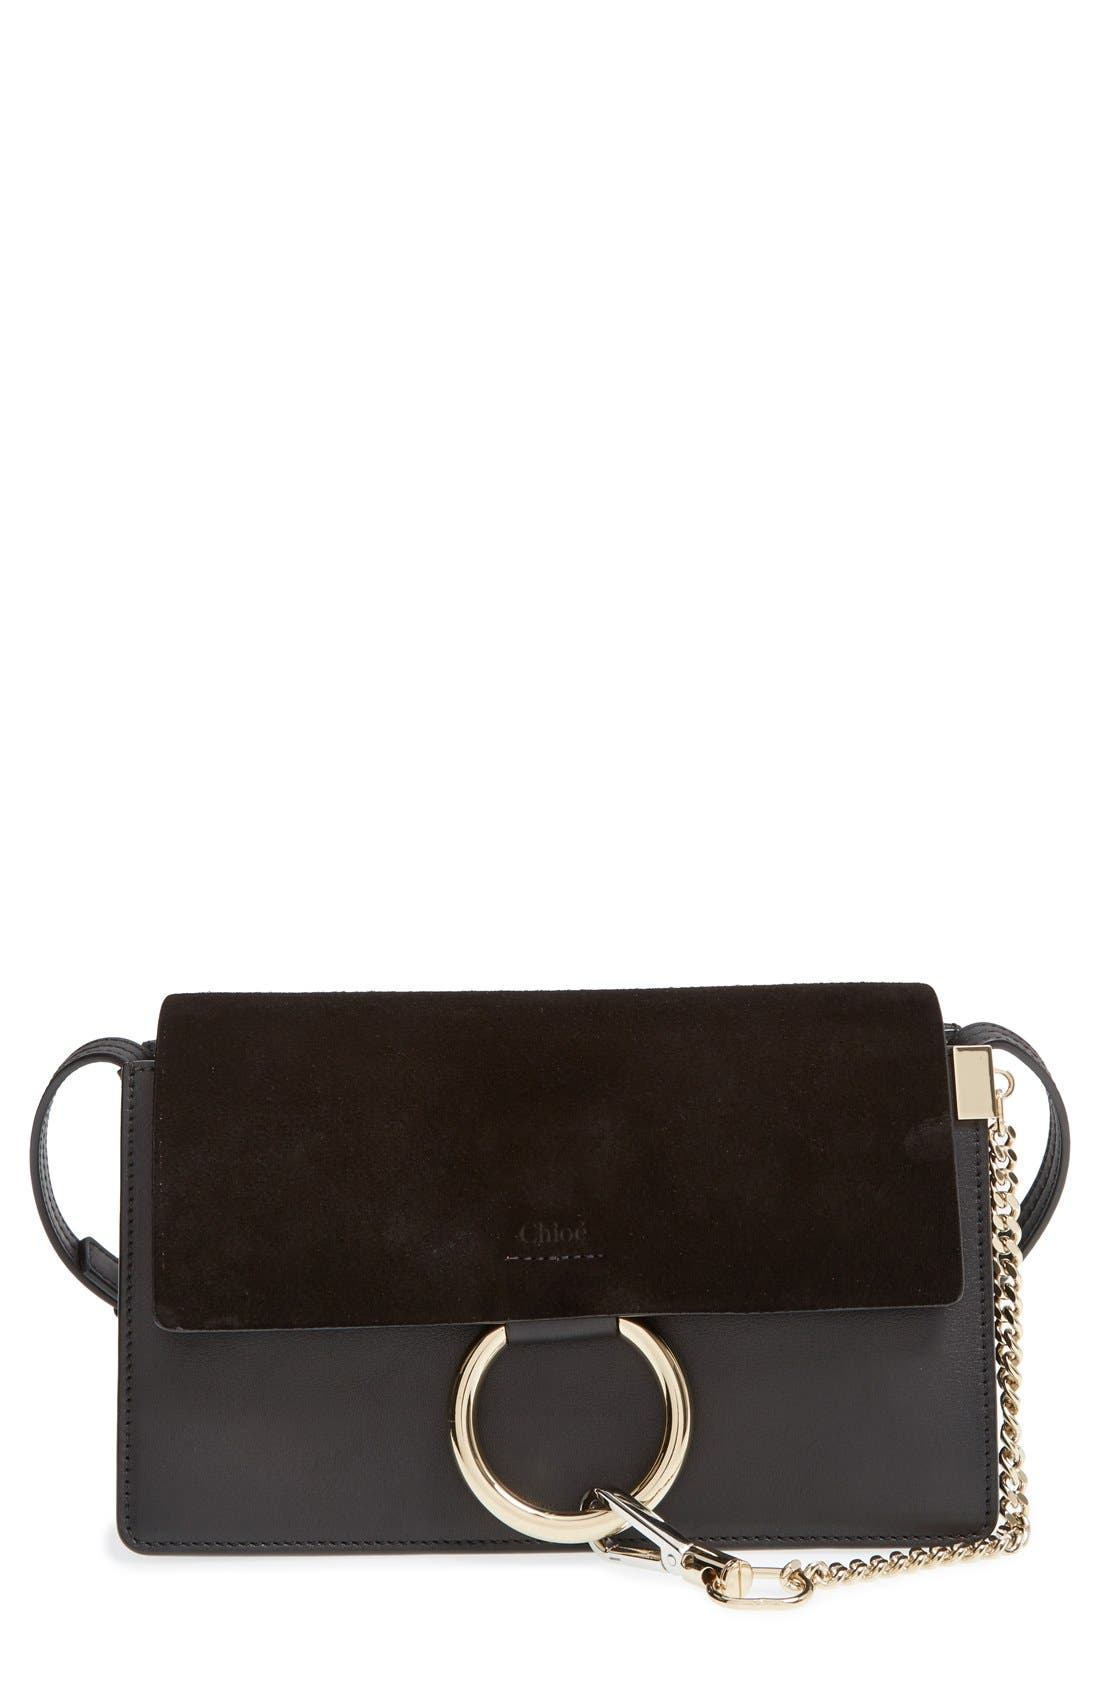 Chloé Small Faye Leather Shoulder Bag